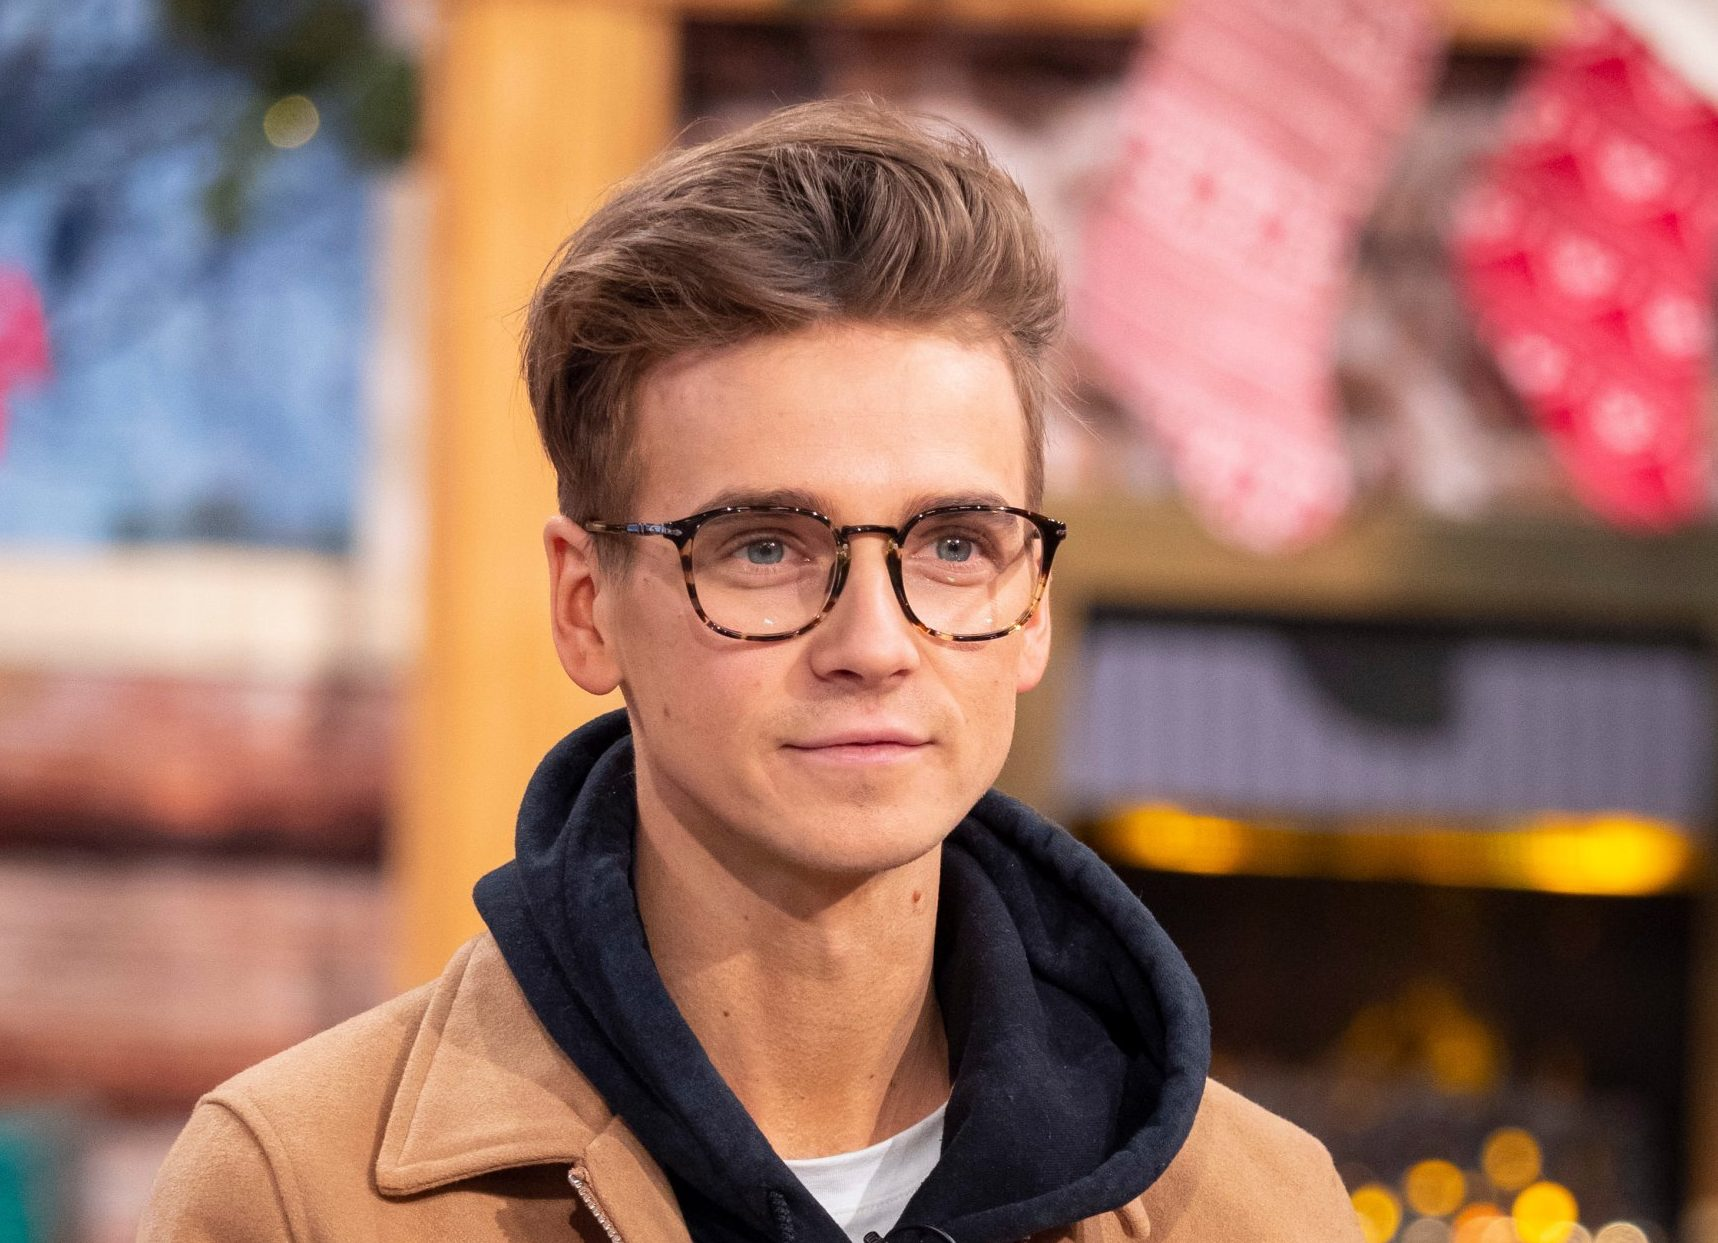 Editorial use only Mandatory Credit: Photo by Ken McKay/ITV/REX/Shutterstock (10014193cj) Joe Sugg 'This Morning' TV show, London, UK - 05 Dec 2018 He???s the YouTube vlogger turned Strictly sensation, but has he got what it takes to win that glitterball trophy? After making it to the semi-finals last weekend, Joe Sugg will be waltzing his way into the studio alongside dance partner Dianne Buswell as he talks life since Strictly, why his grandparents inspired his Strictly adventure and why he wouldn???t say no to a career in the West End.